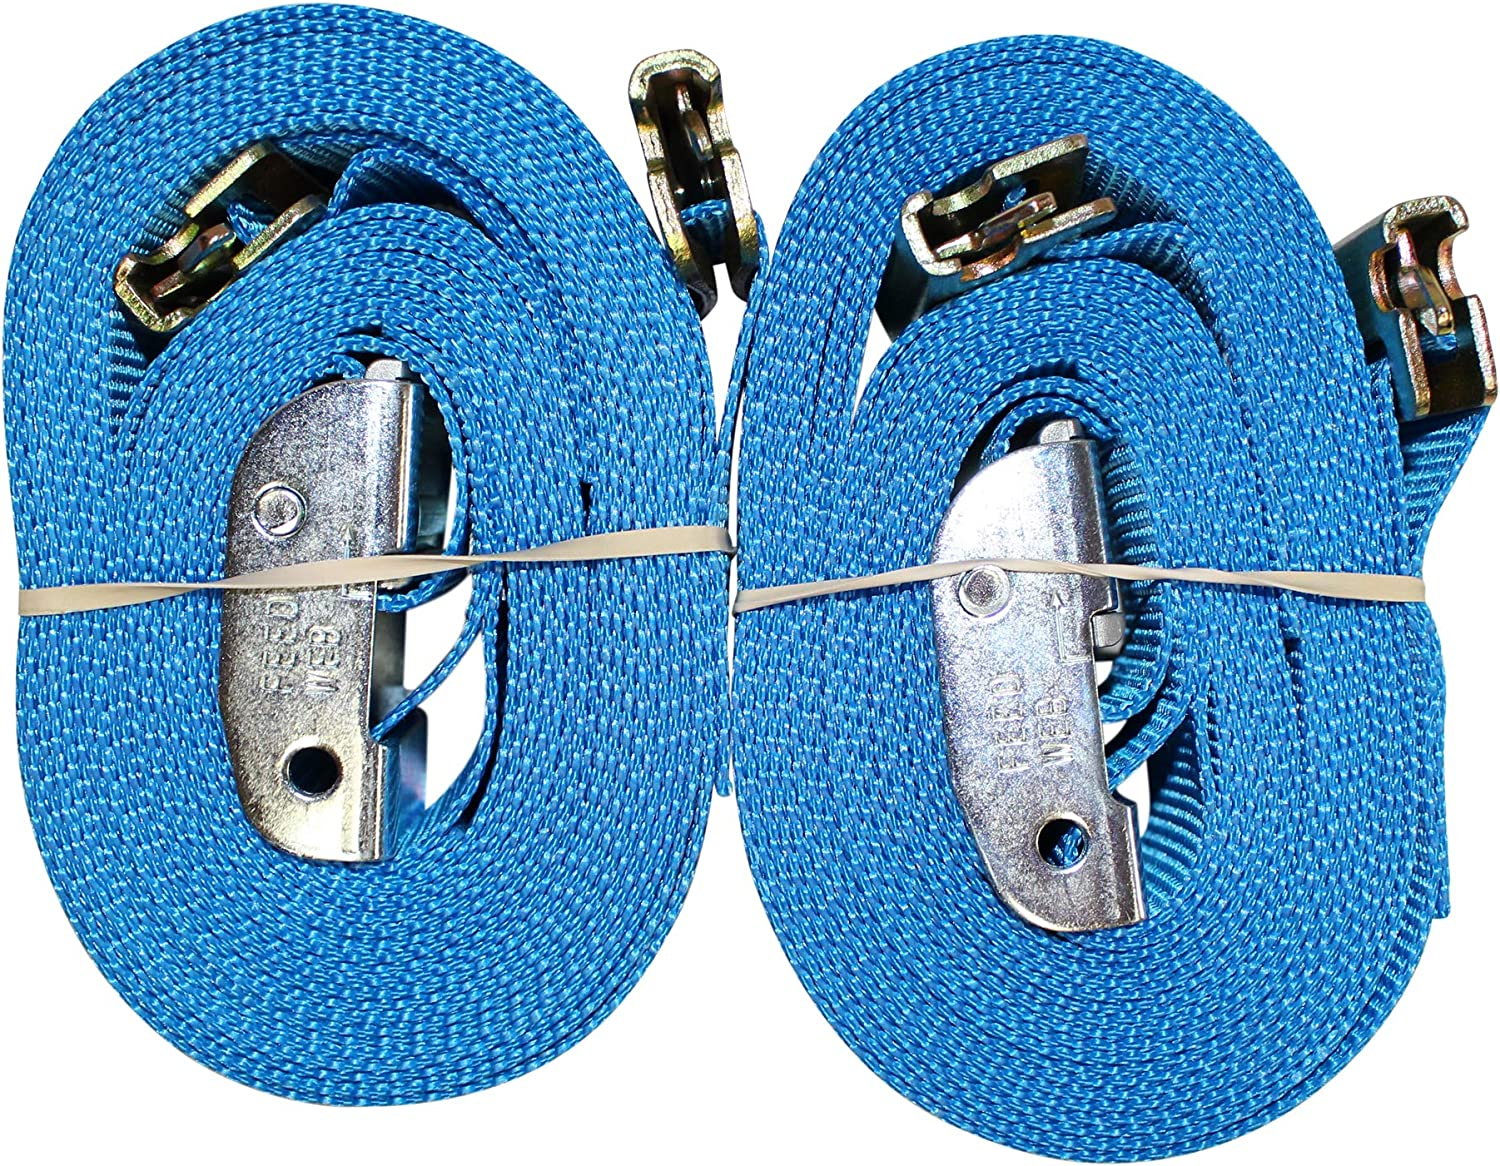 Heavy Duty Cargo Strap for Loading Truck Bed SGT KNOTS E-Track Adjustable Cam Buckle Strap Utility Trailer 2 x 12ft, 4Pack - Yellow